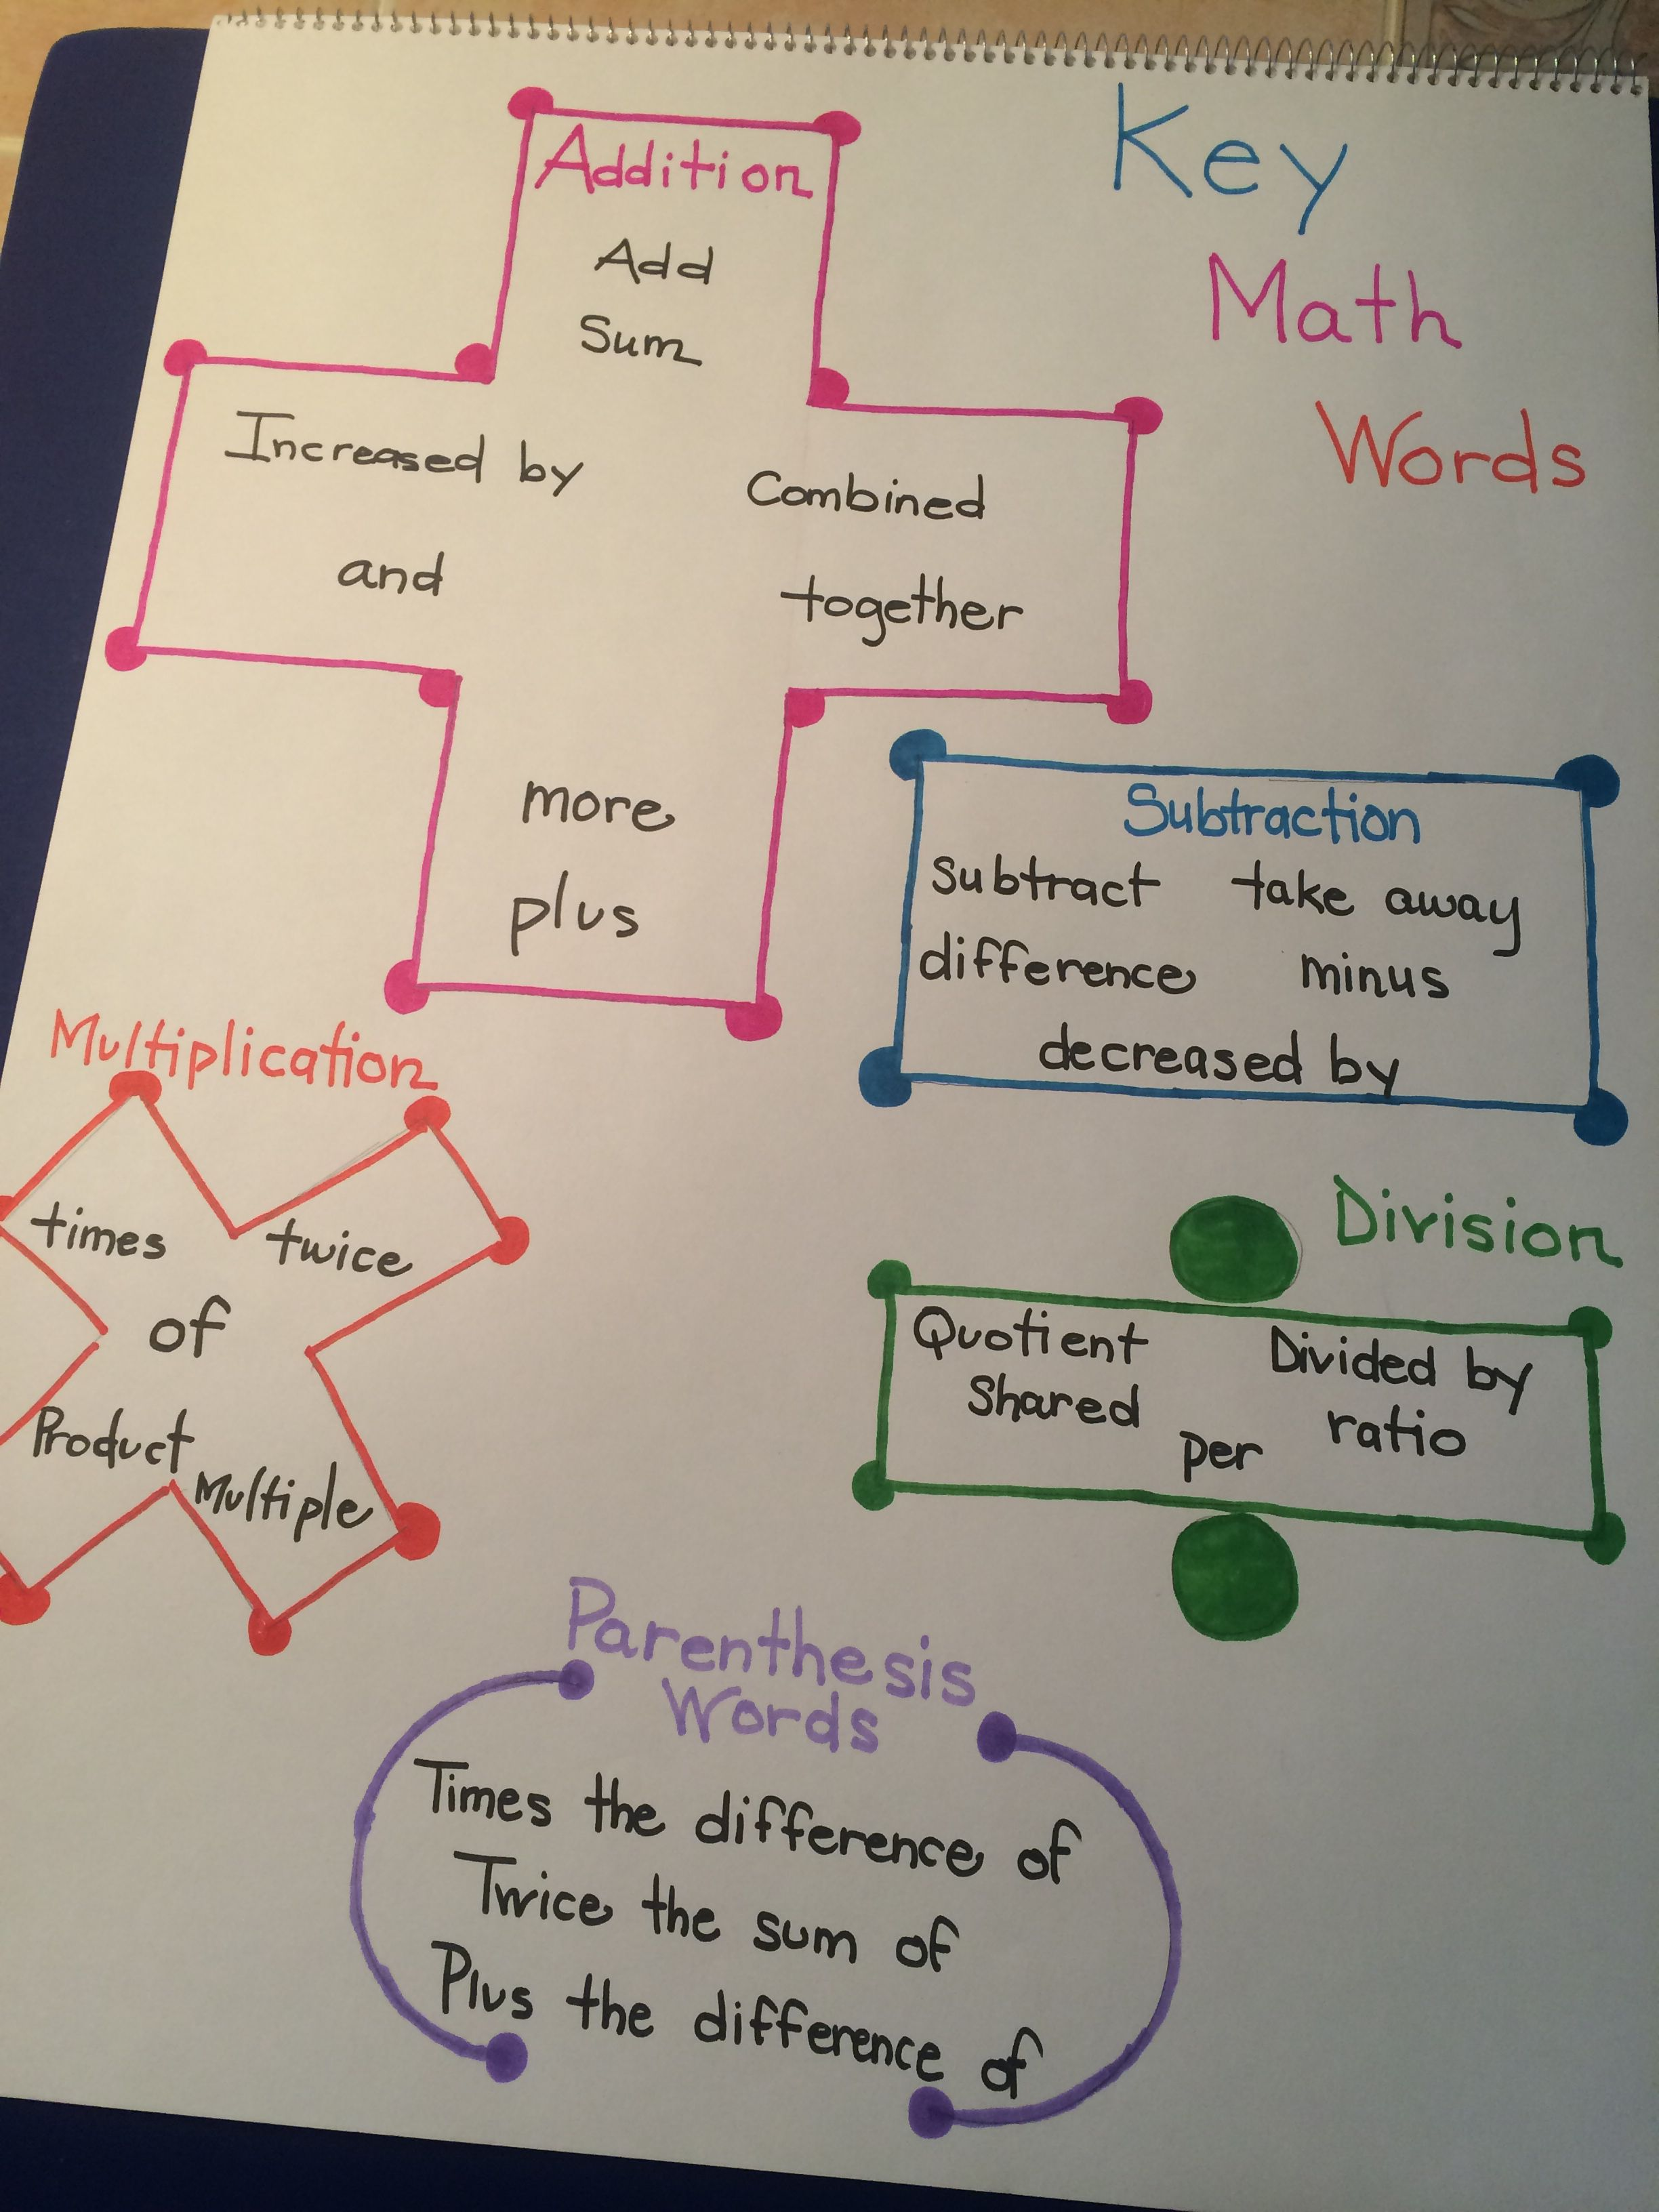 Key Math Words Add Subtract Multiply Or Divide That Is The Question